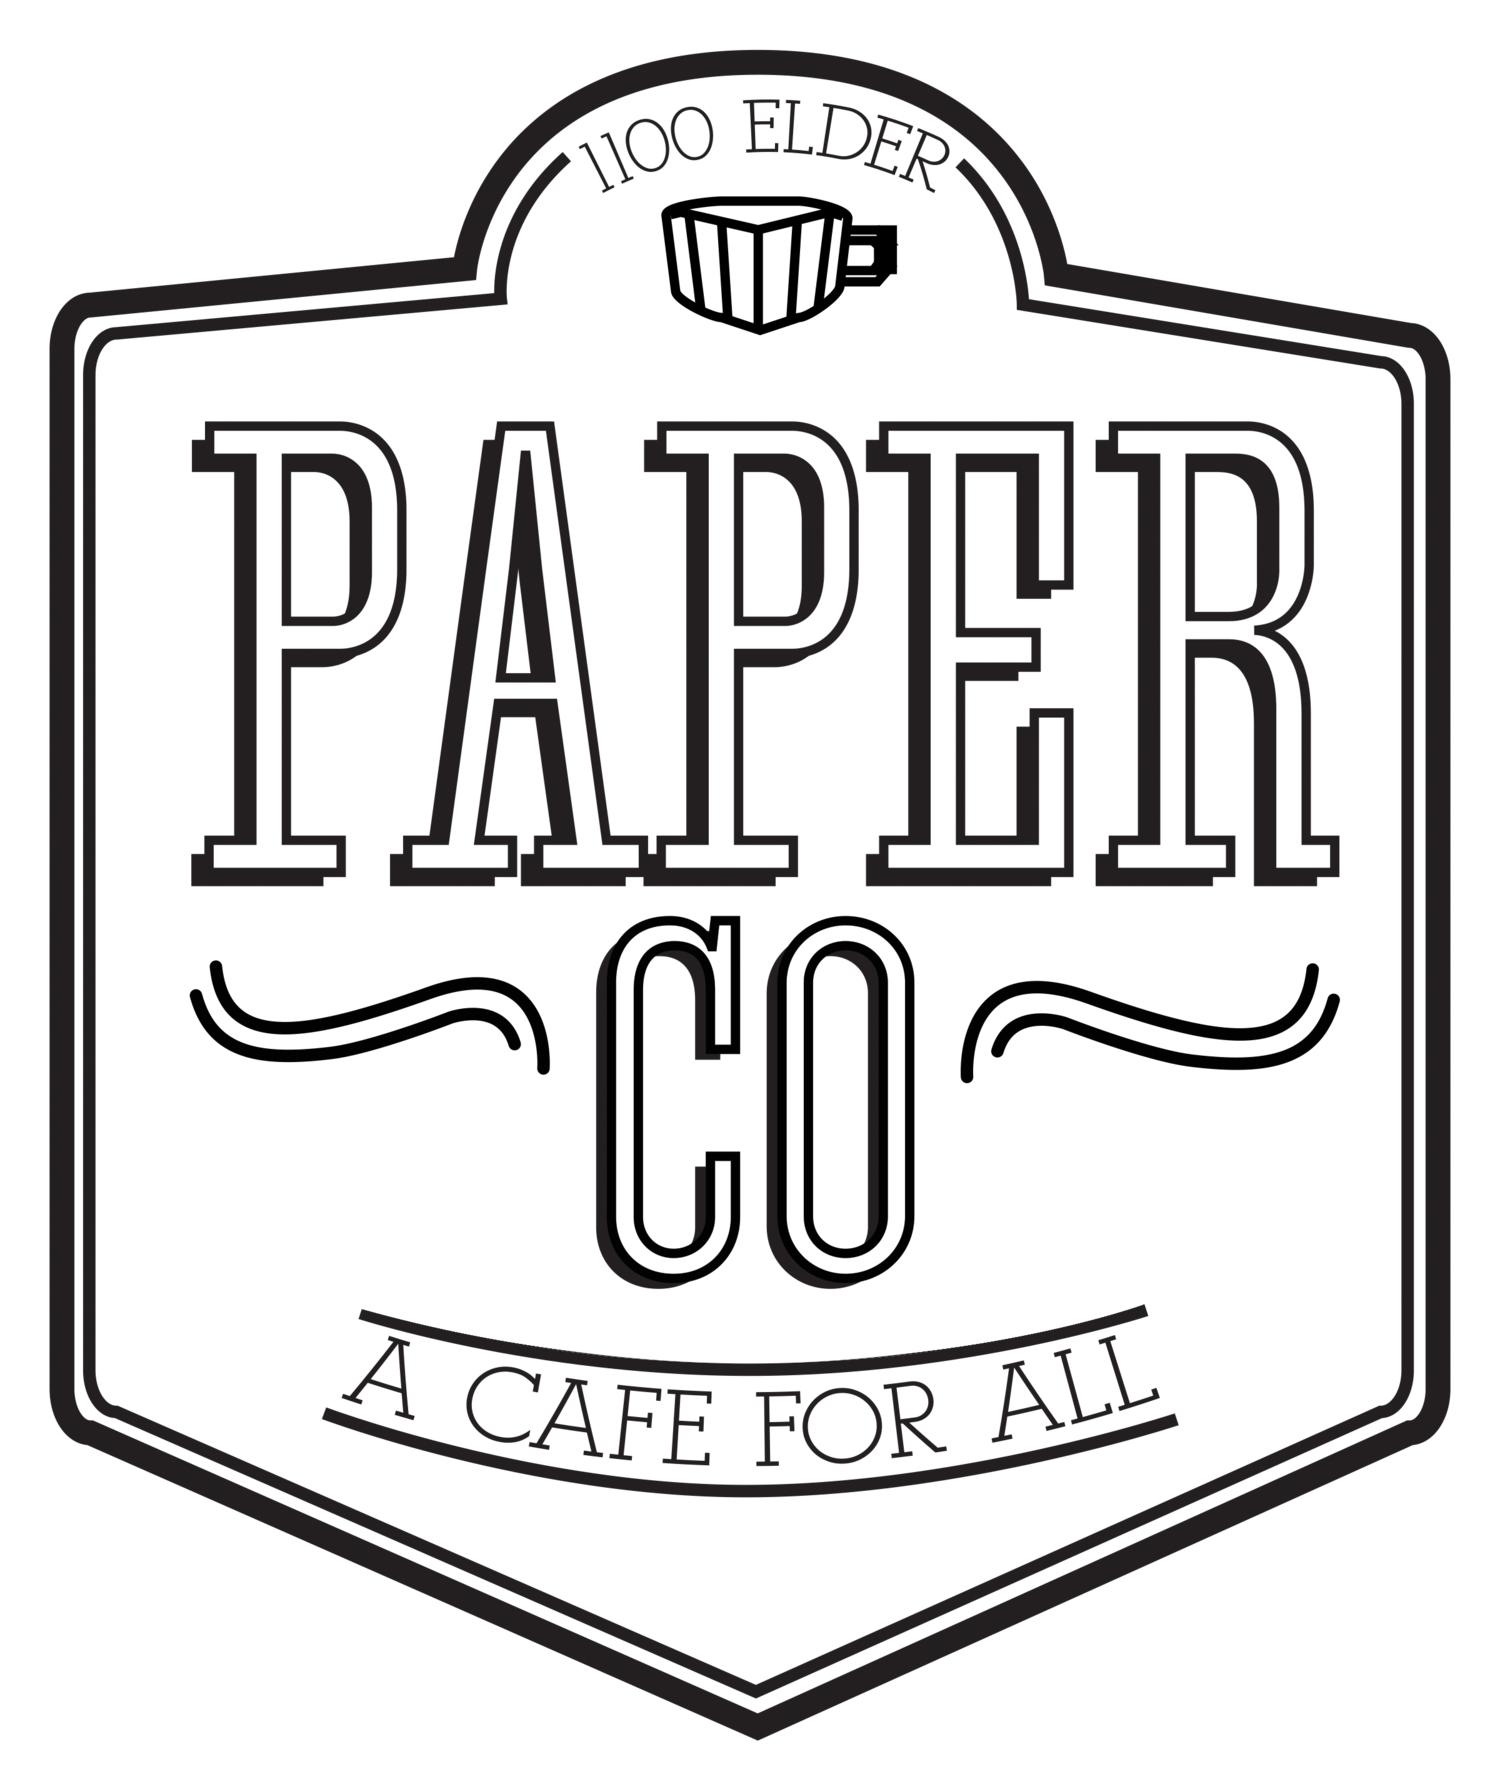 Paper Co. Cafe